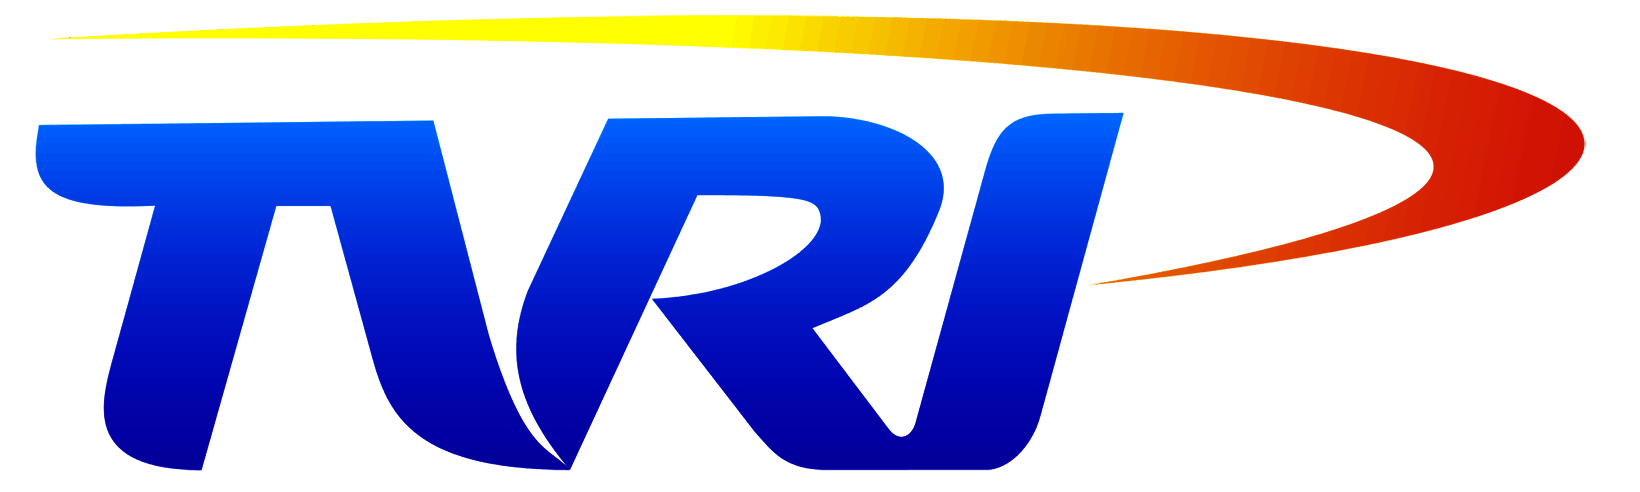 Watch tvri indonesia live streaming tvri indonesia live stopboris Image collections